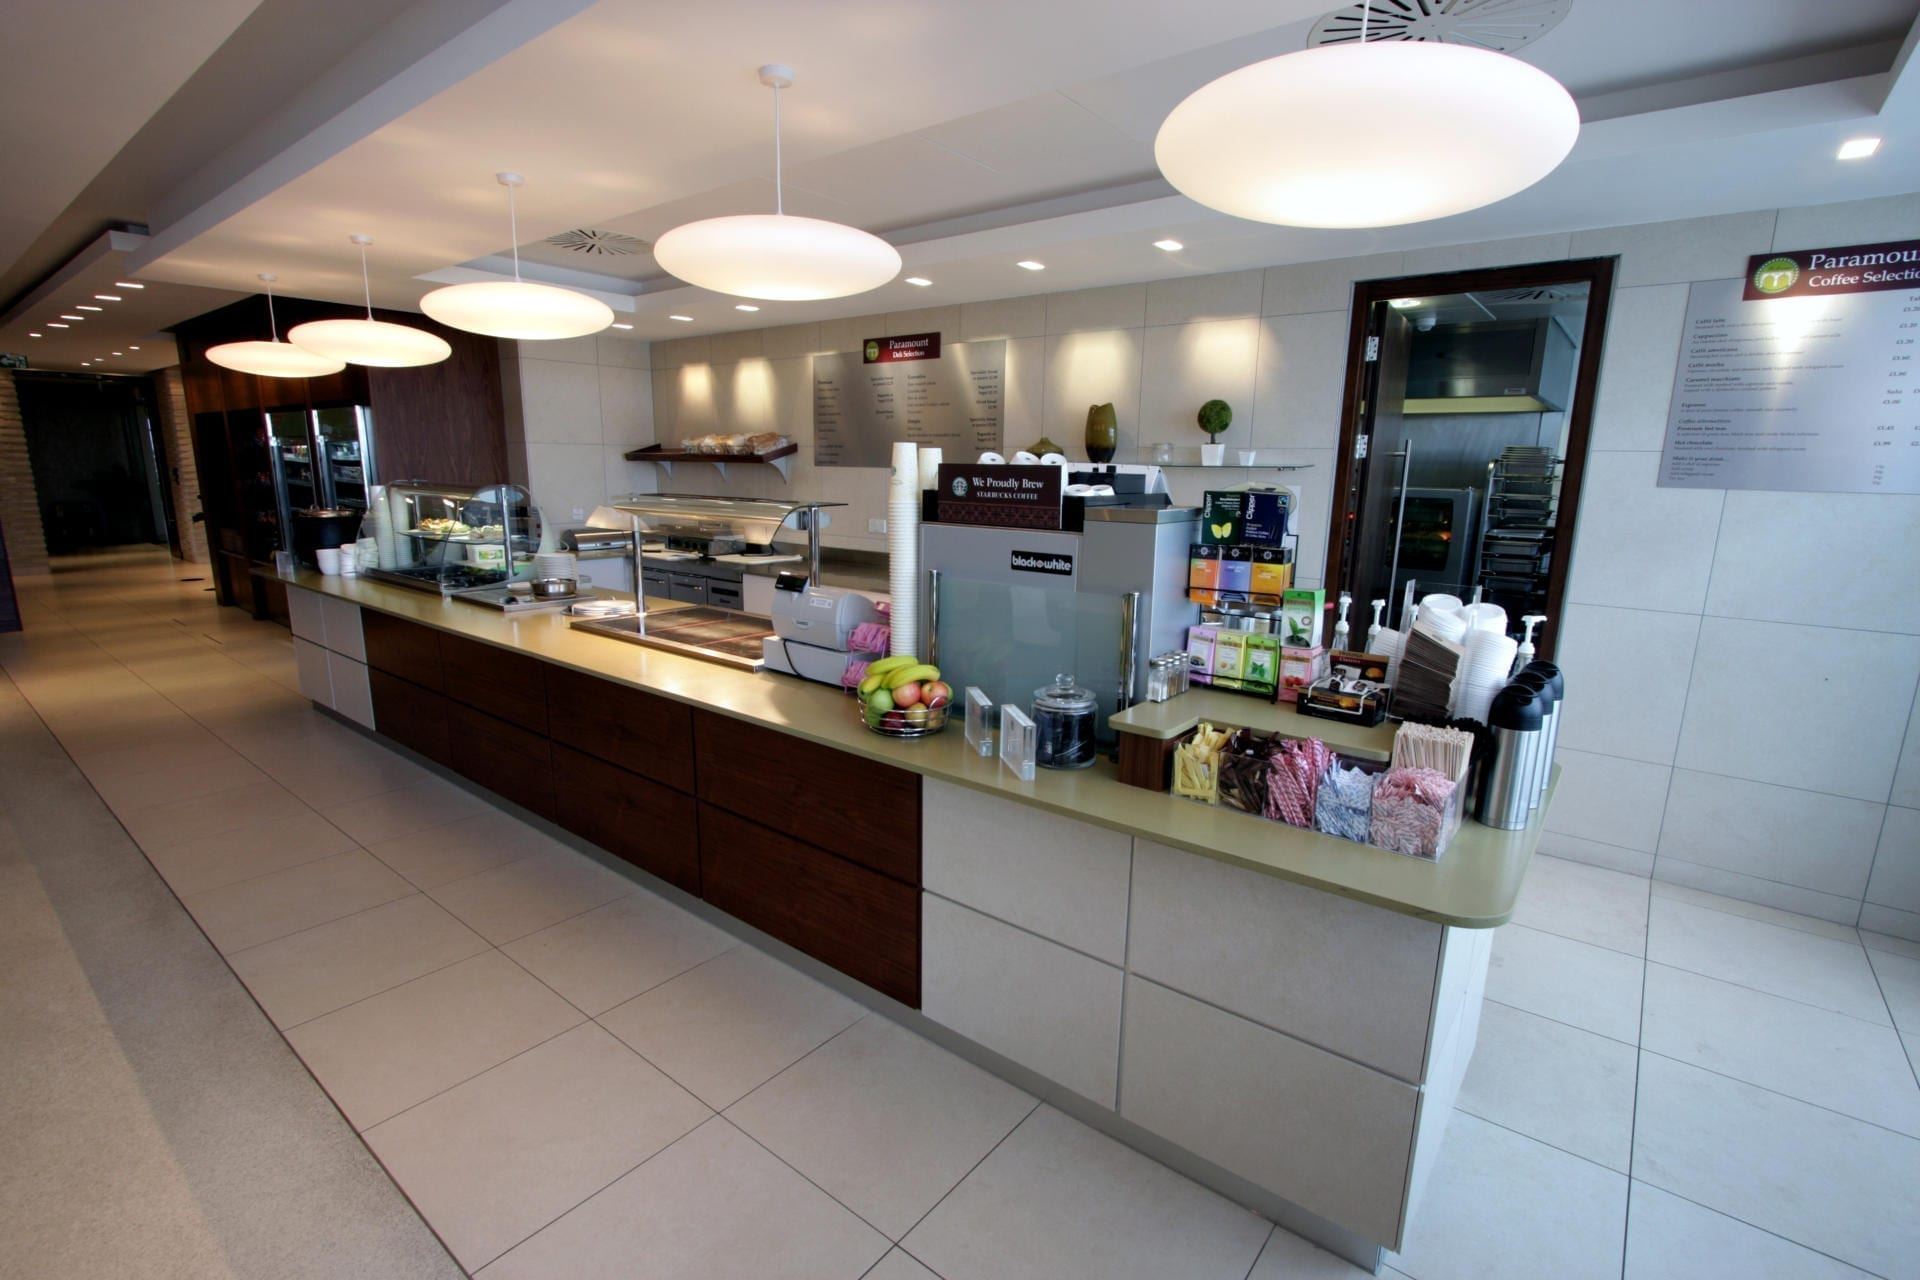 Paramount-Pictures-Charlton-House-Catering-Chiswick-Servery-Front-of-house-Servery-Food-Display-spacecatering_2